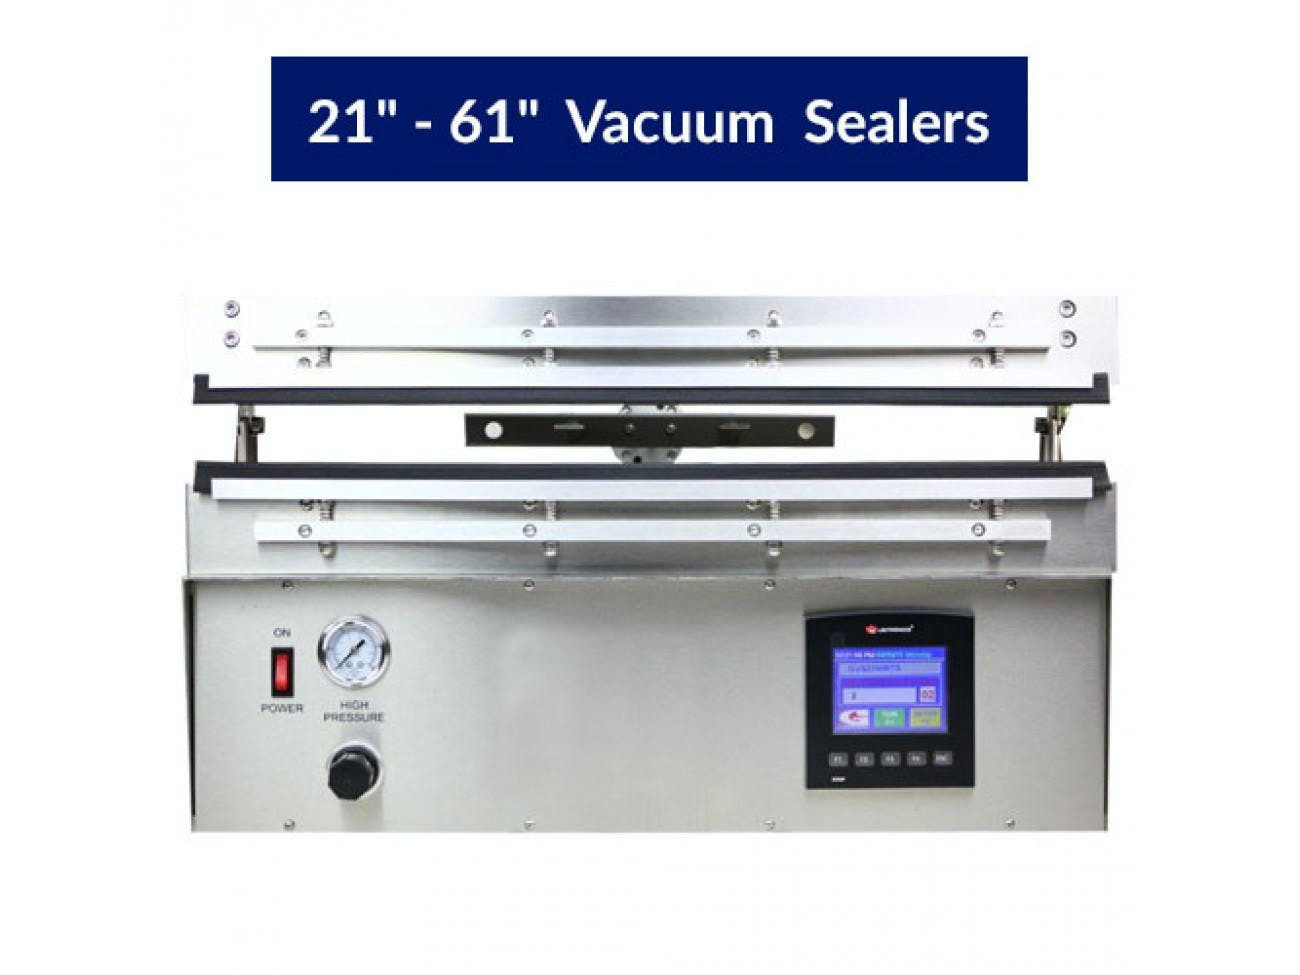 GVS Workhorse Nozzle Vacuum Sealer Vacuum packaging machine sold by Sealer Sales